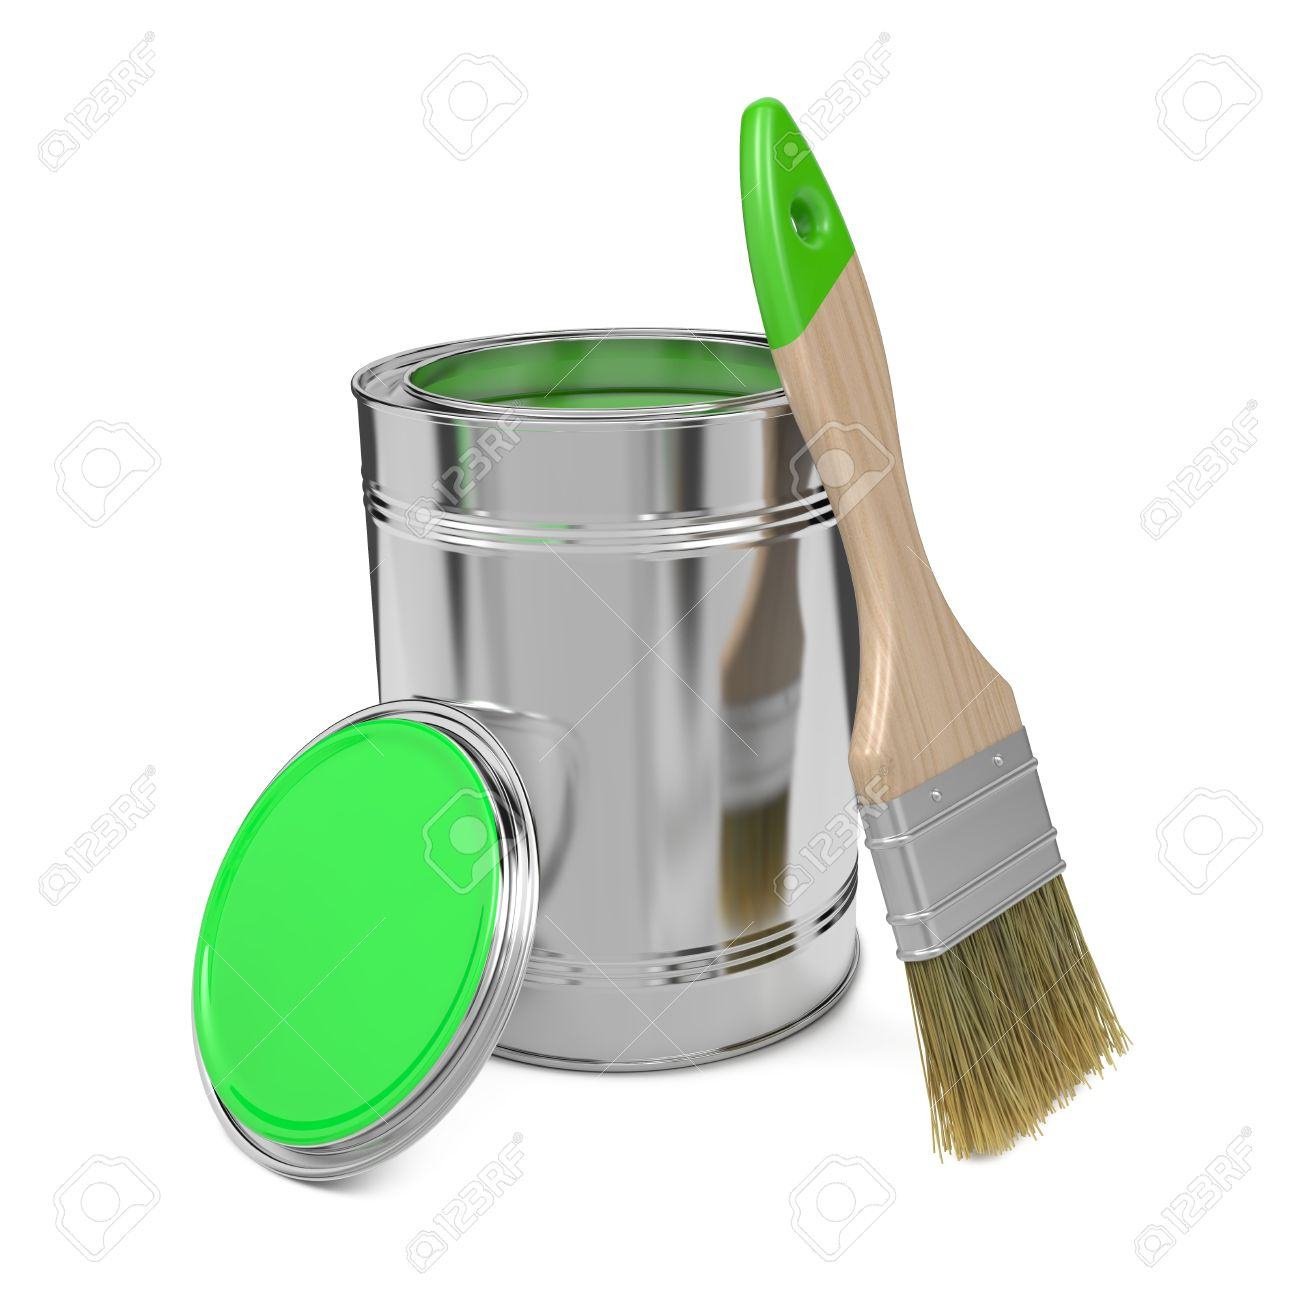 Paint Can with Green Paint and Paintbrush Isolated on White Background Stock Photo - 17972261